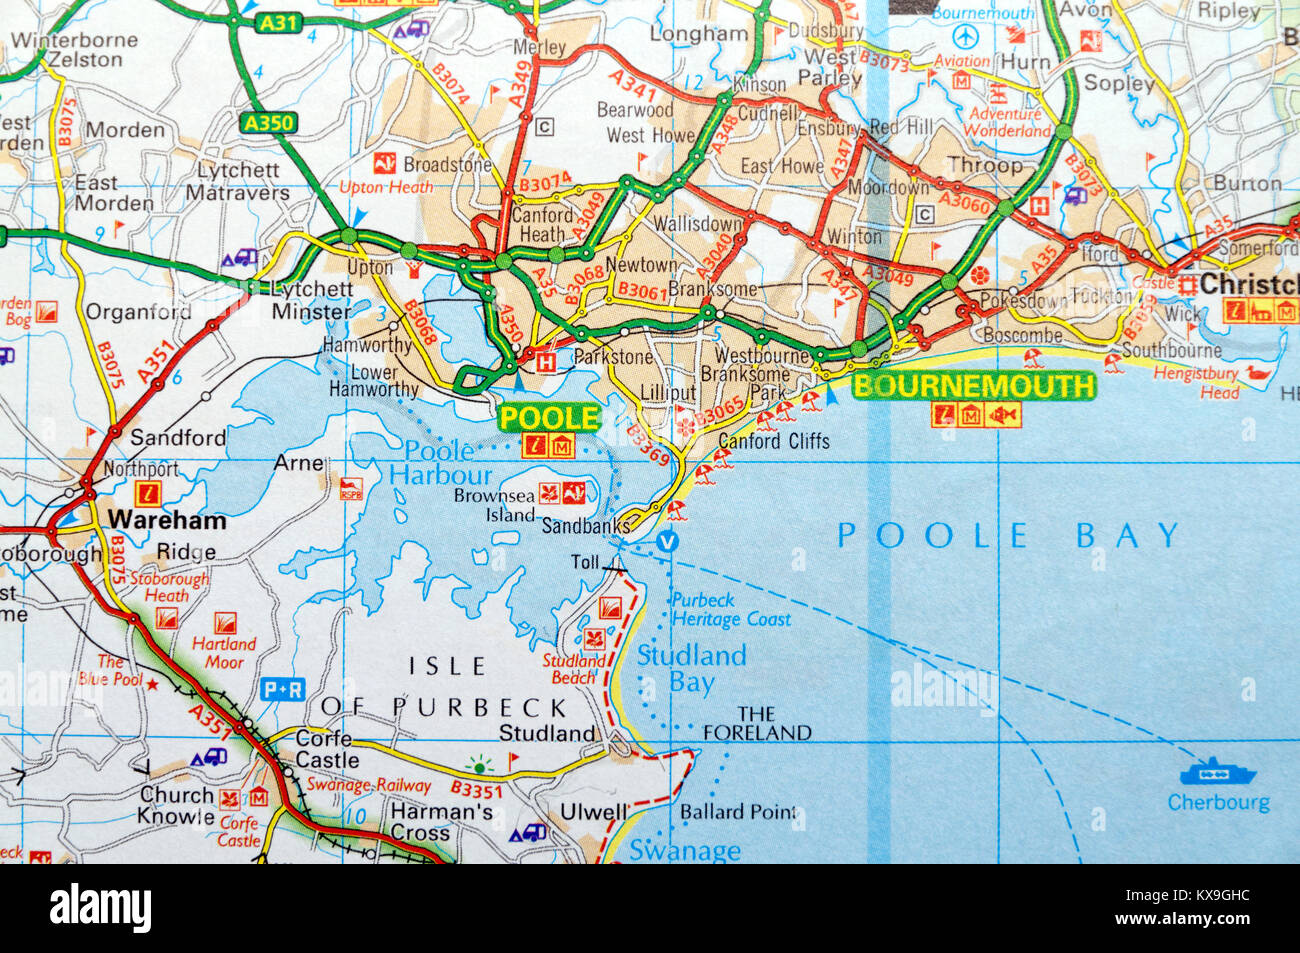 Poole England Map.Road Map Of Poole Harbour And Bournemouth England Stock Photo